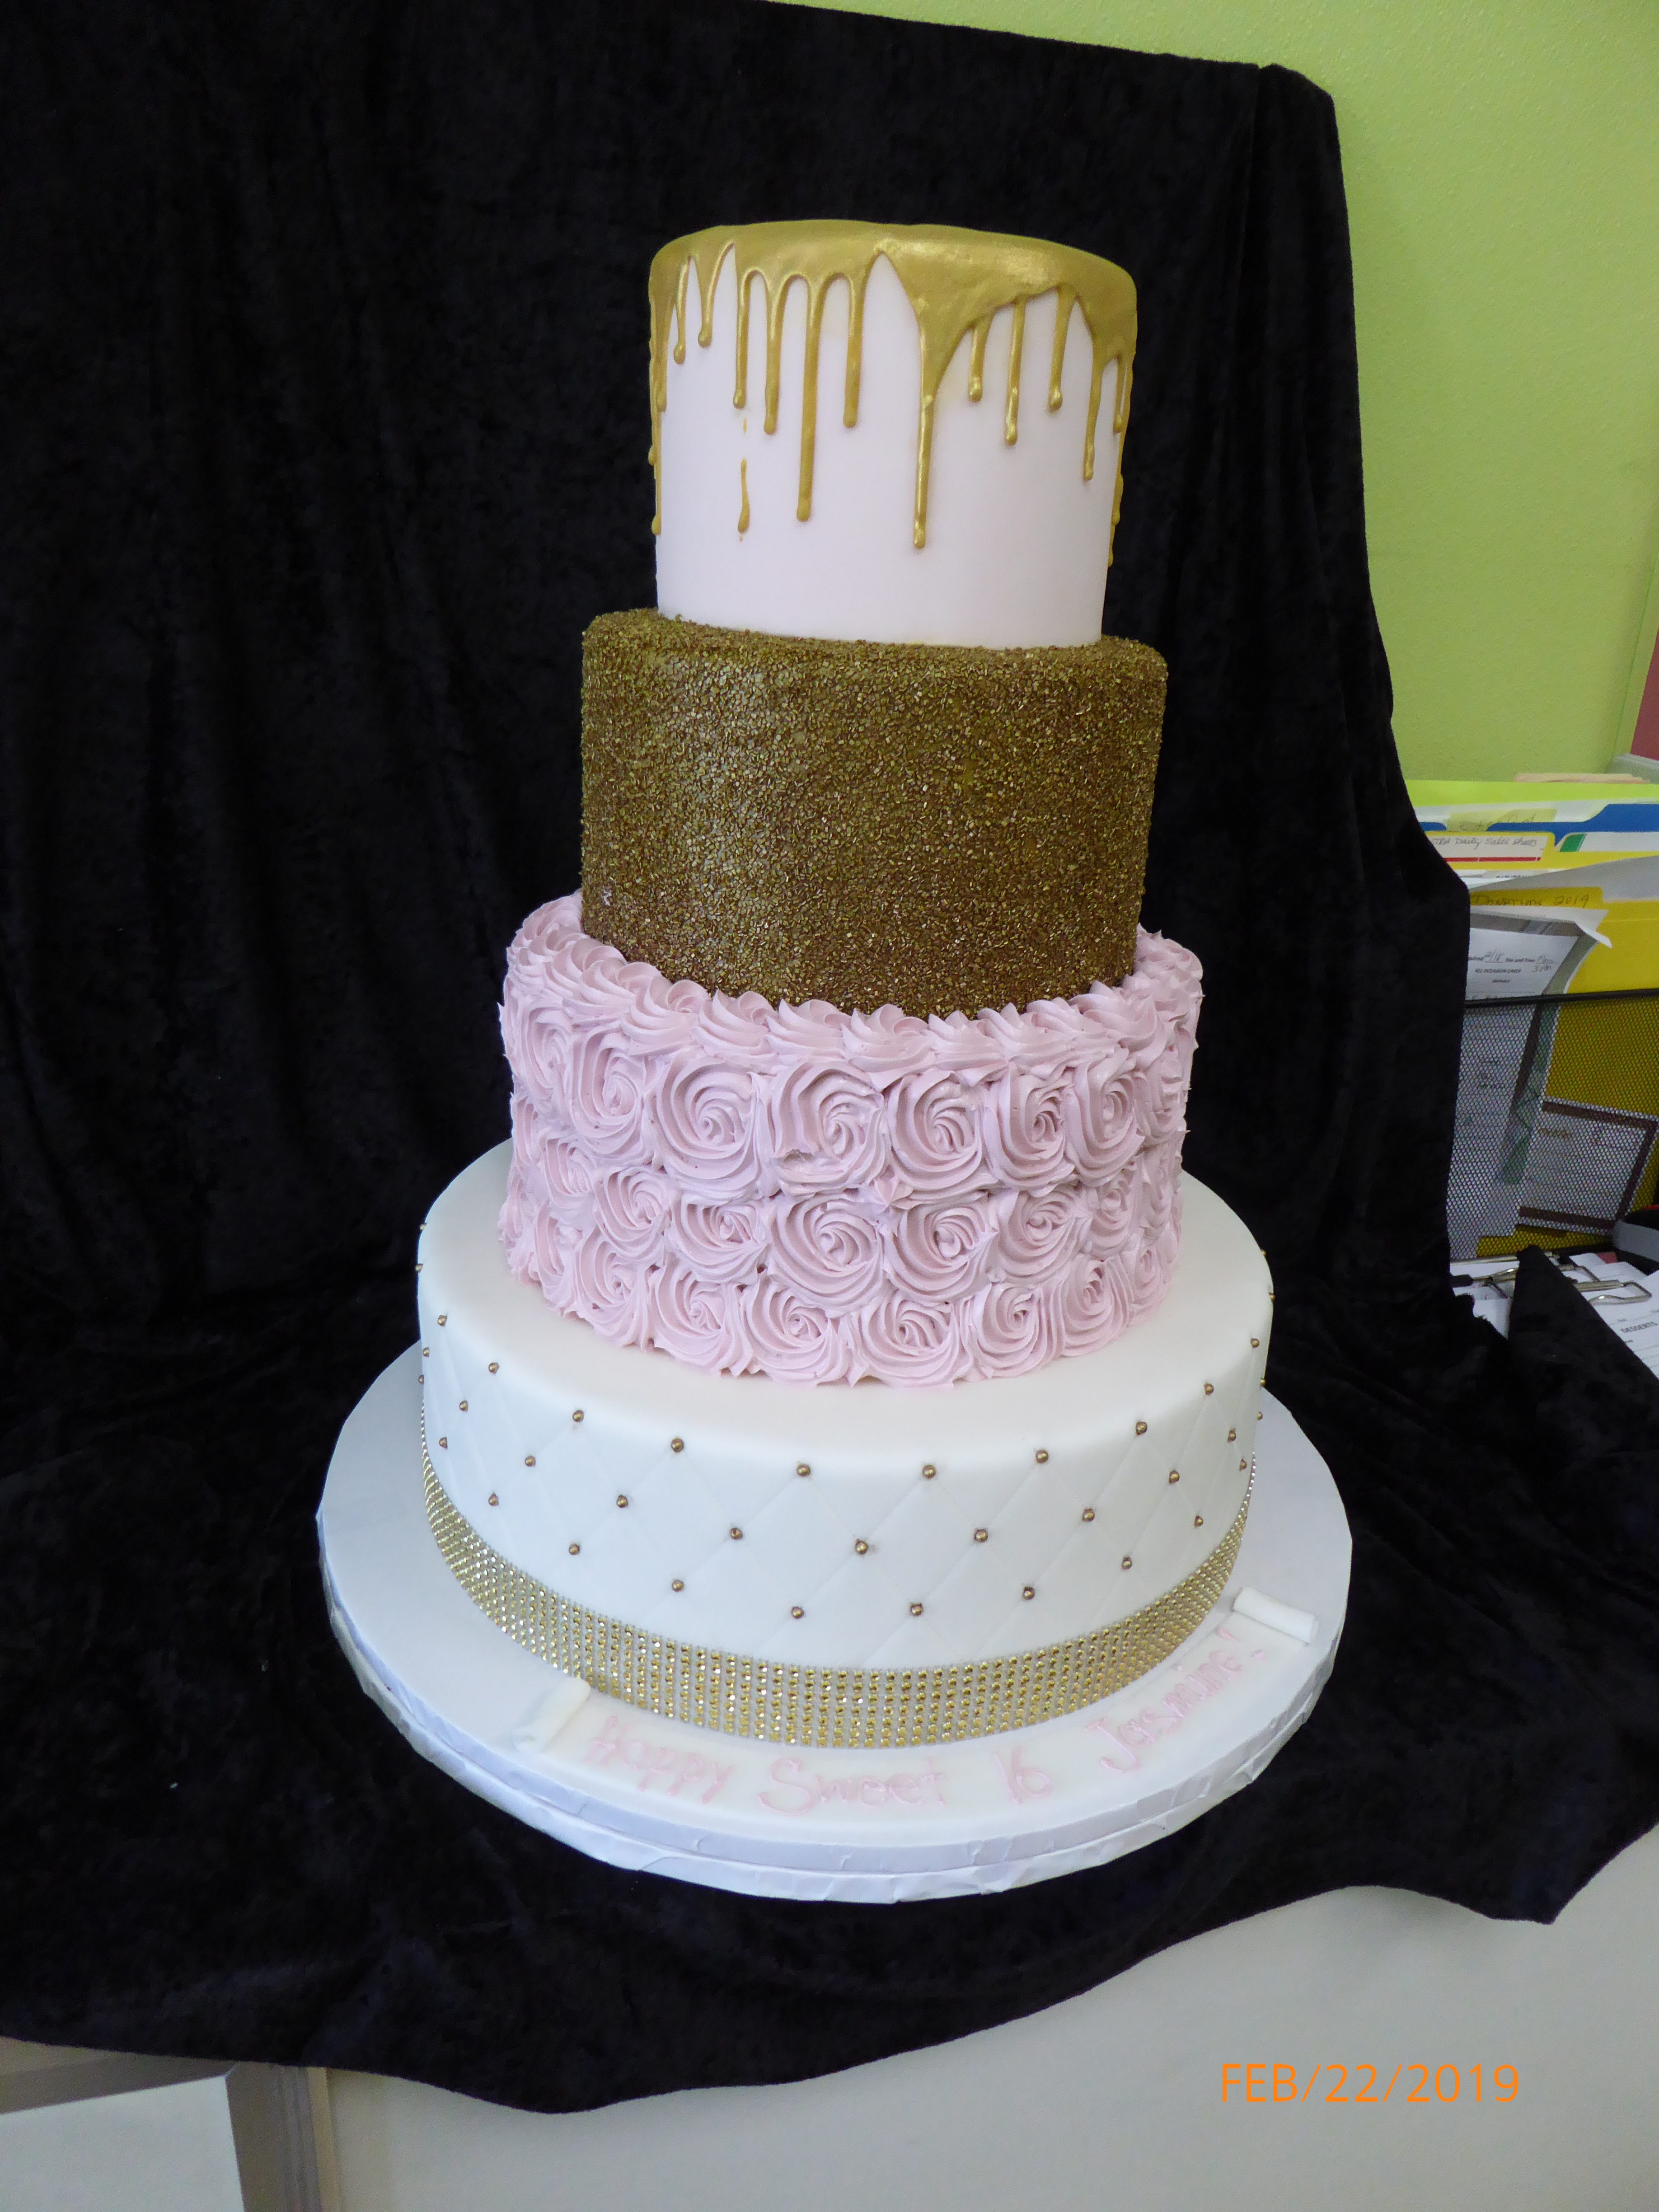 3161, birthday, dots, dot, quilted, rosette, sprinkle, sprinkles, gold, pink, white, drizzle, tiered